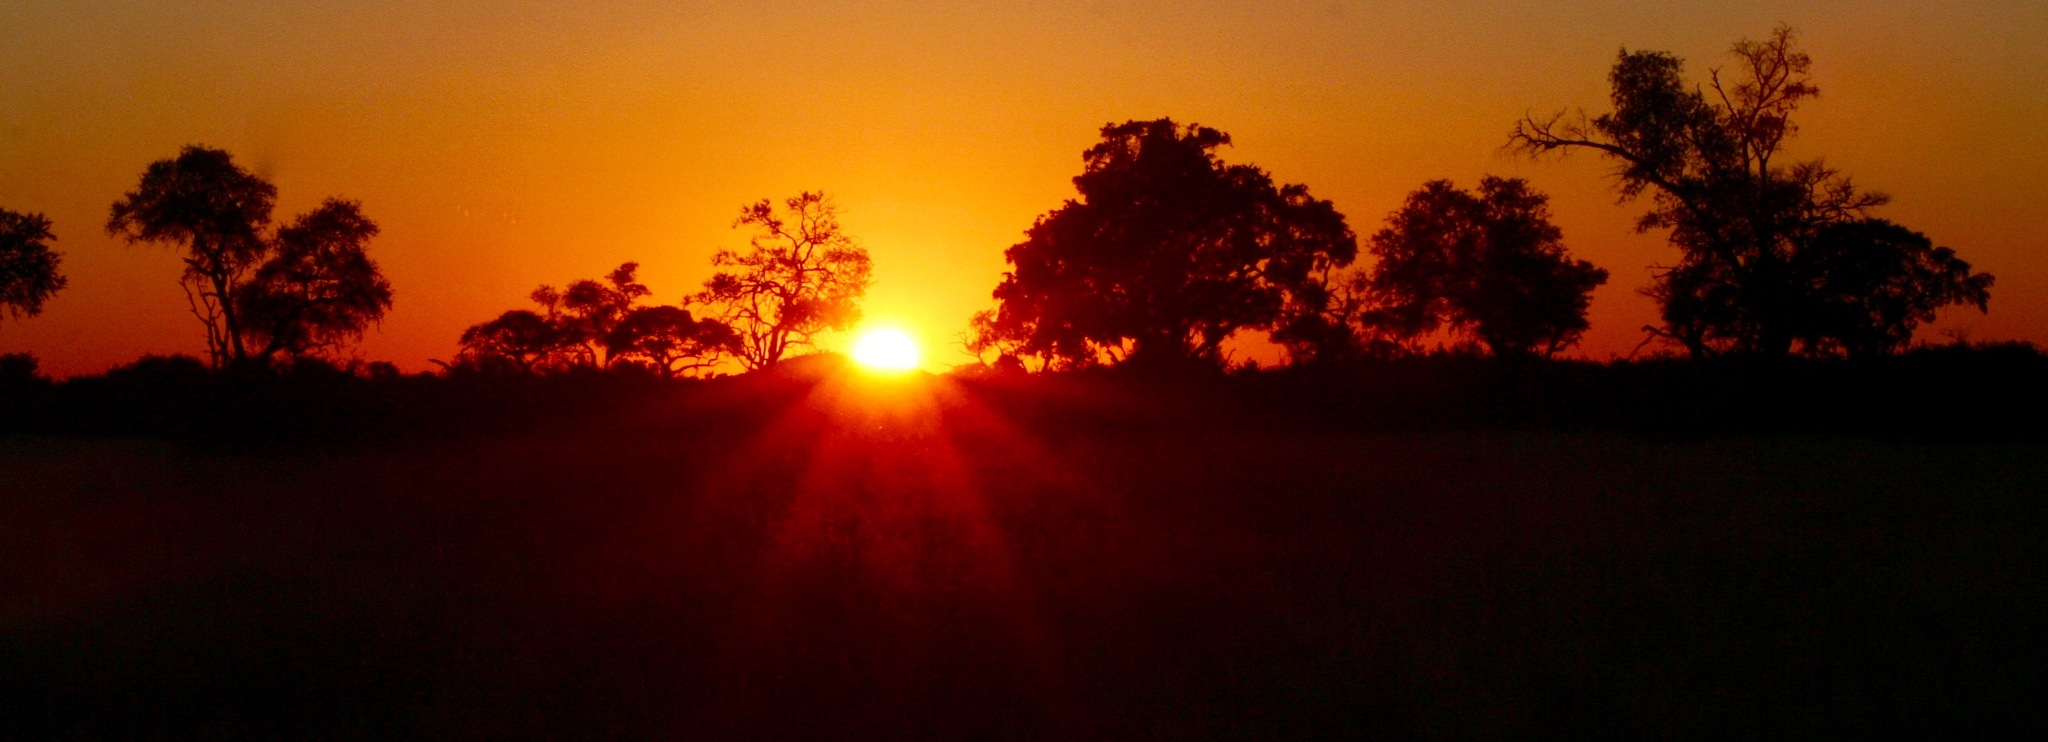 Sunrise on the African savannah by Kate Paris